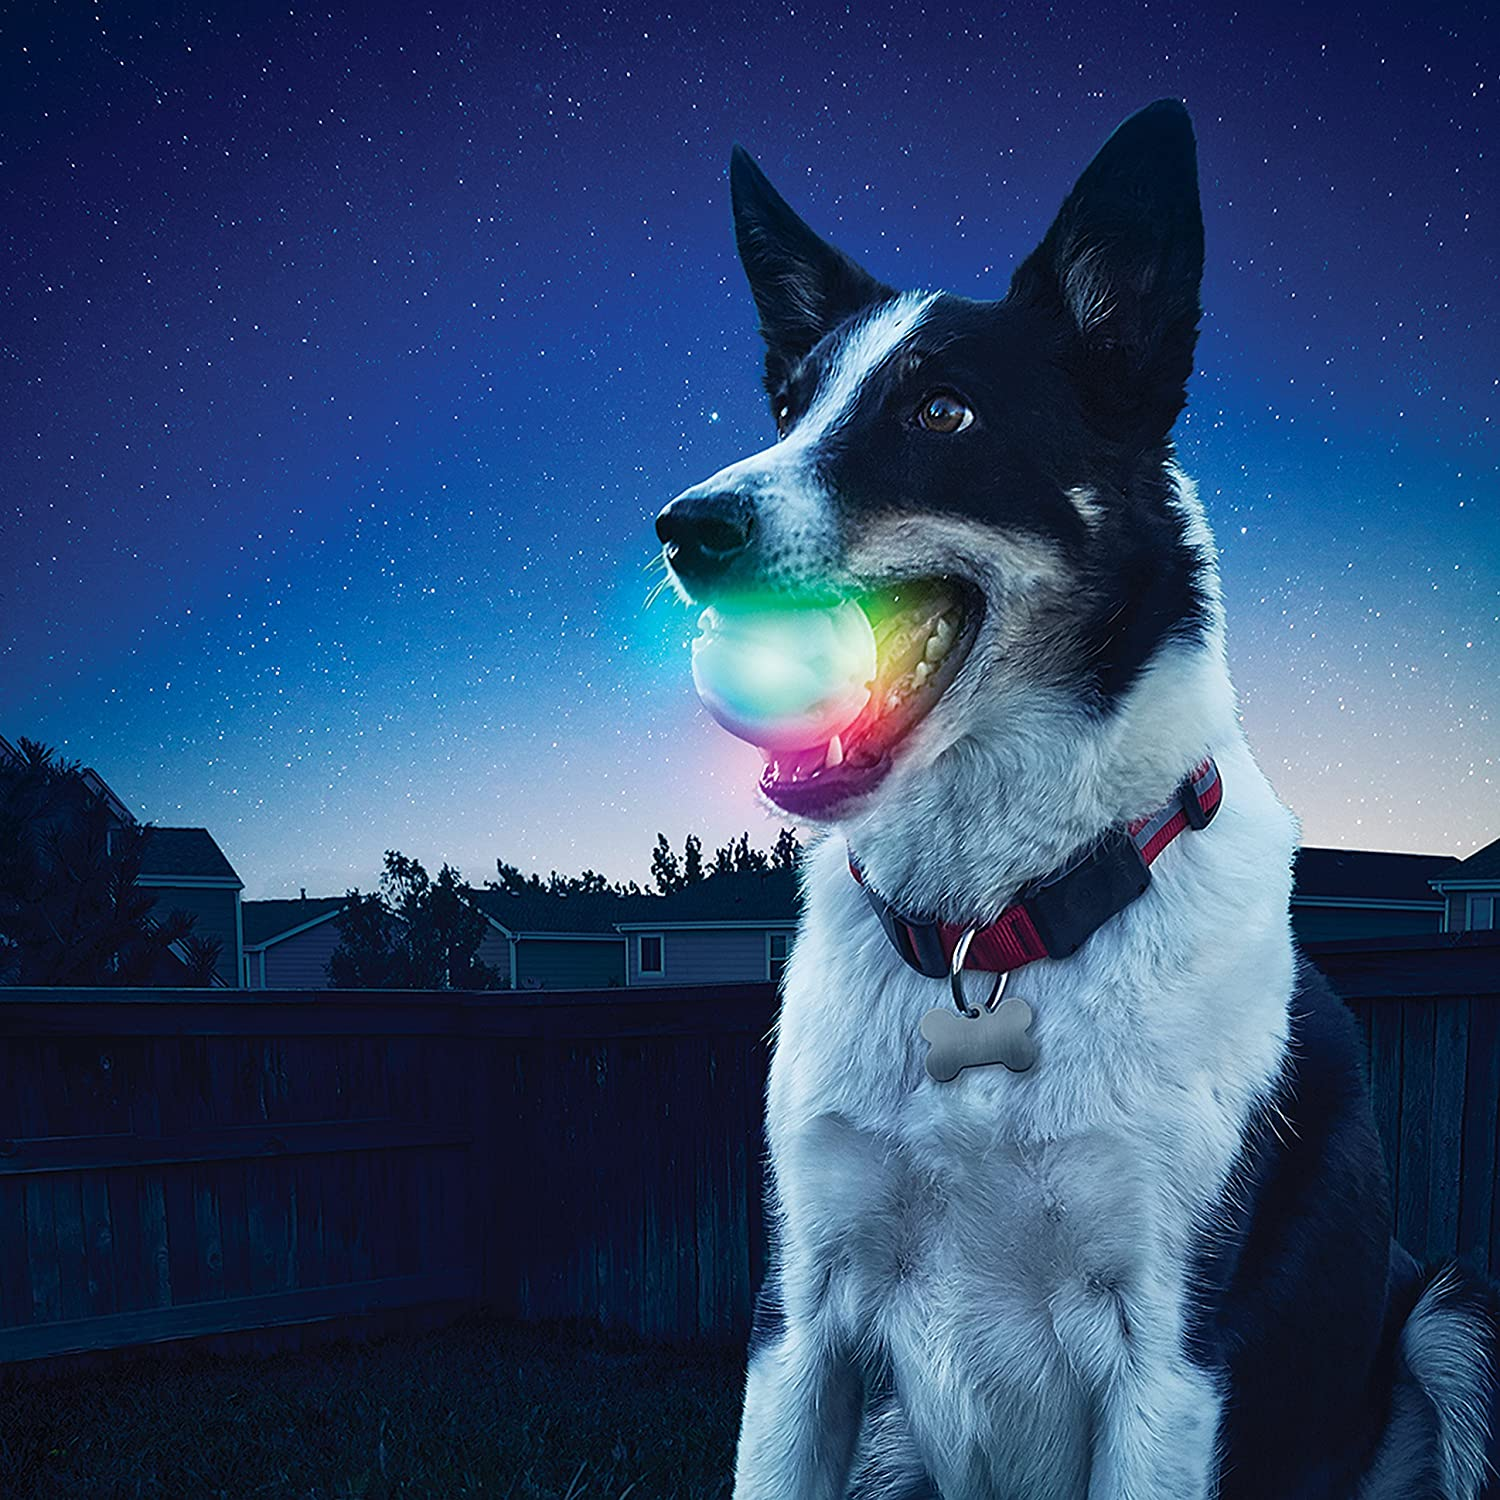 Dog holding LED ball perfect for playing ball in snow.